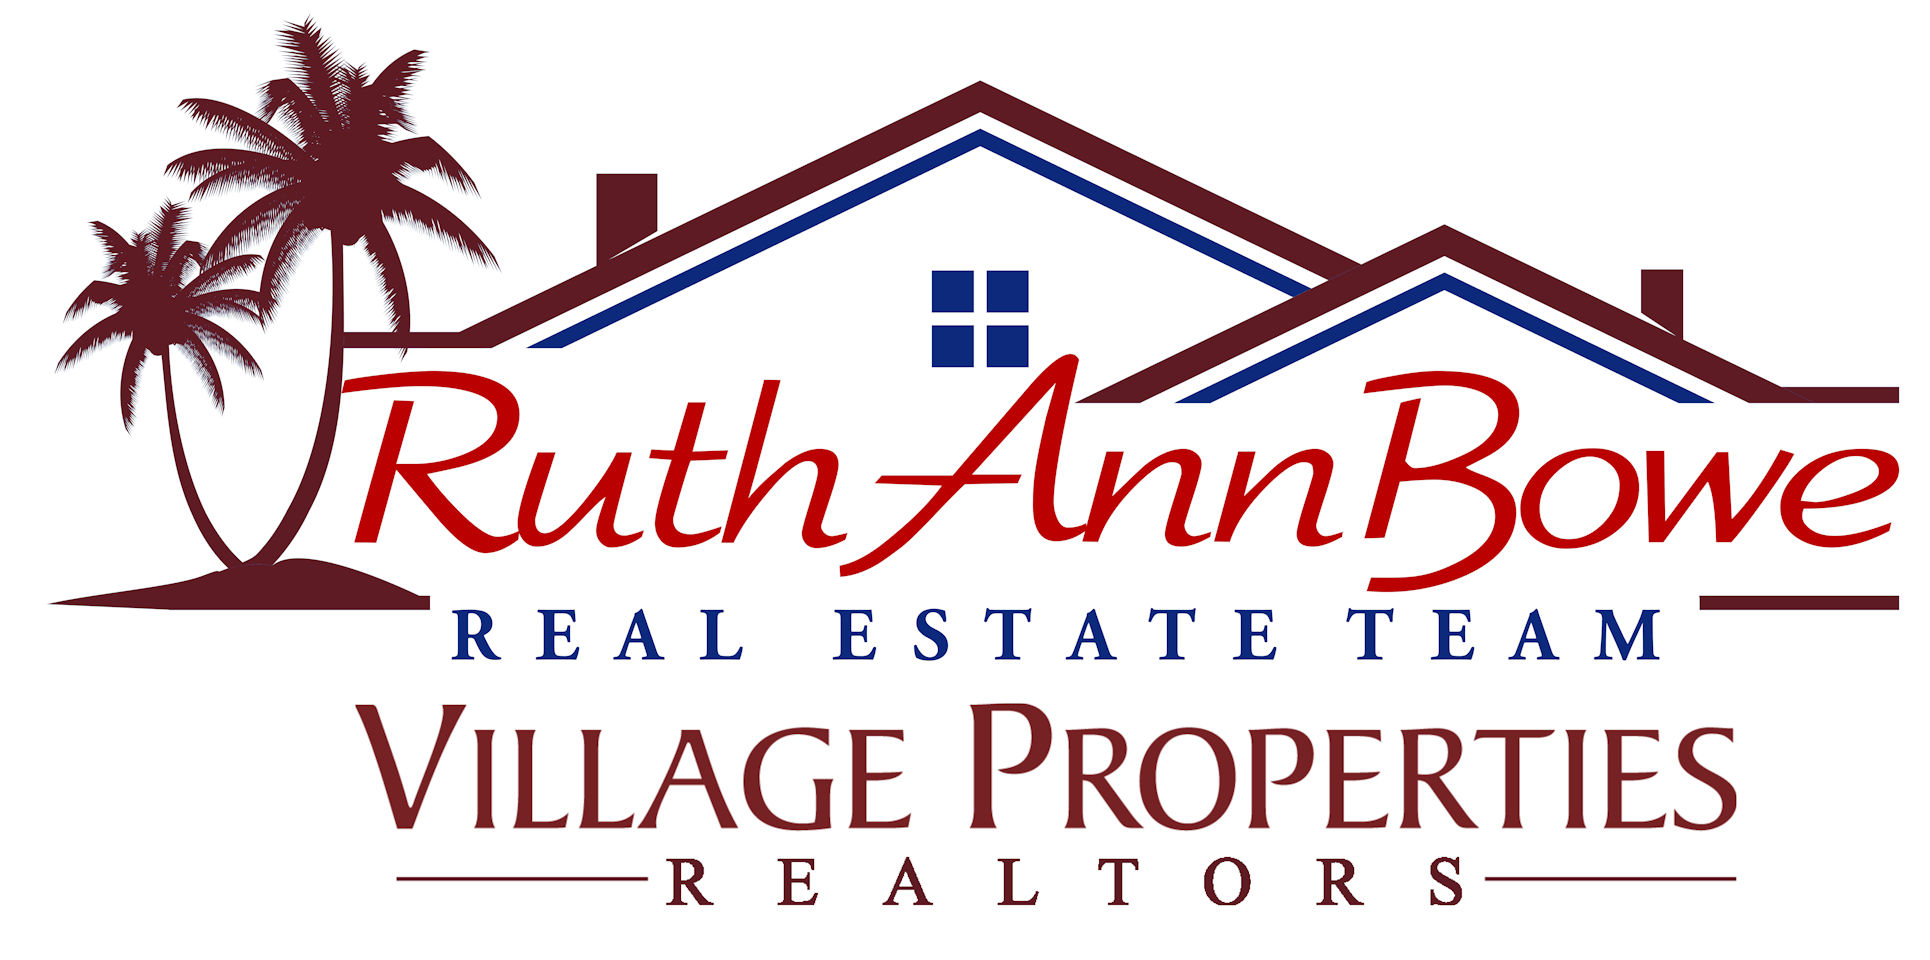 Ruth Ann Bowe Real Estate Team